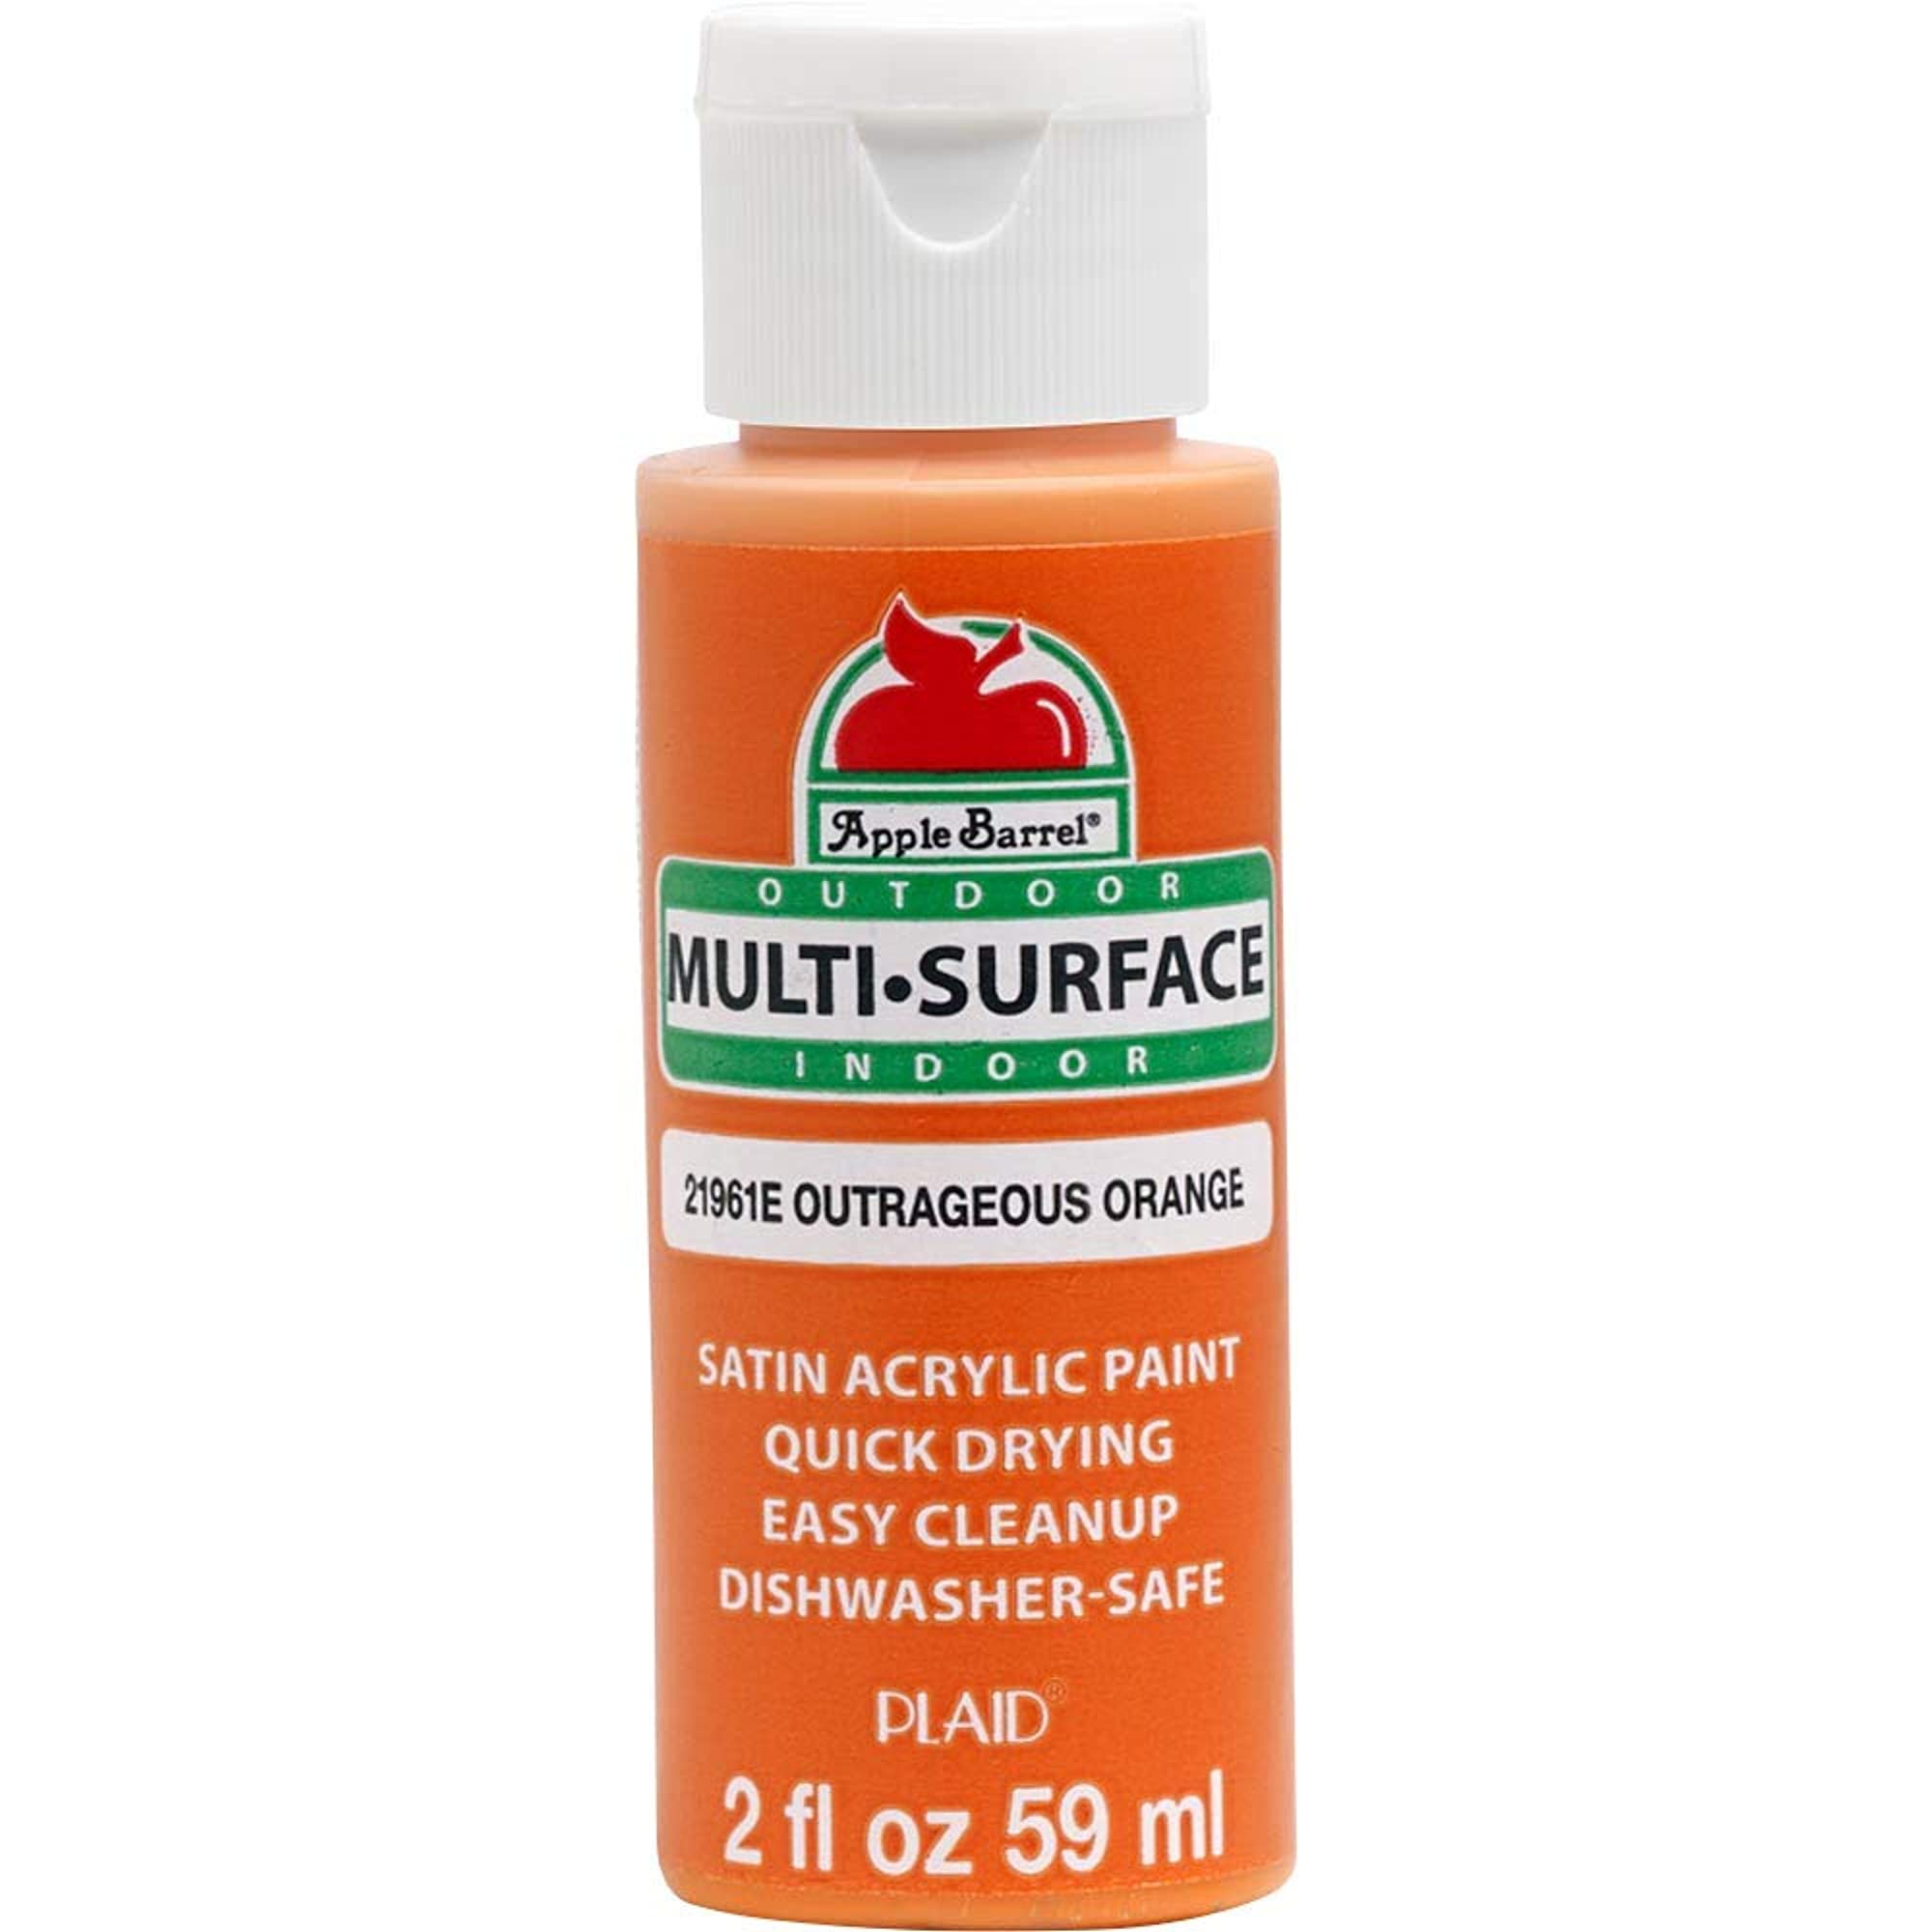 Multi-Surface Stain Finish Acrylic Paint